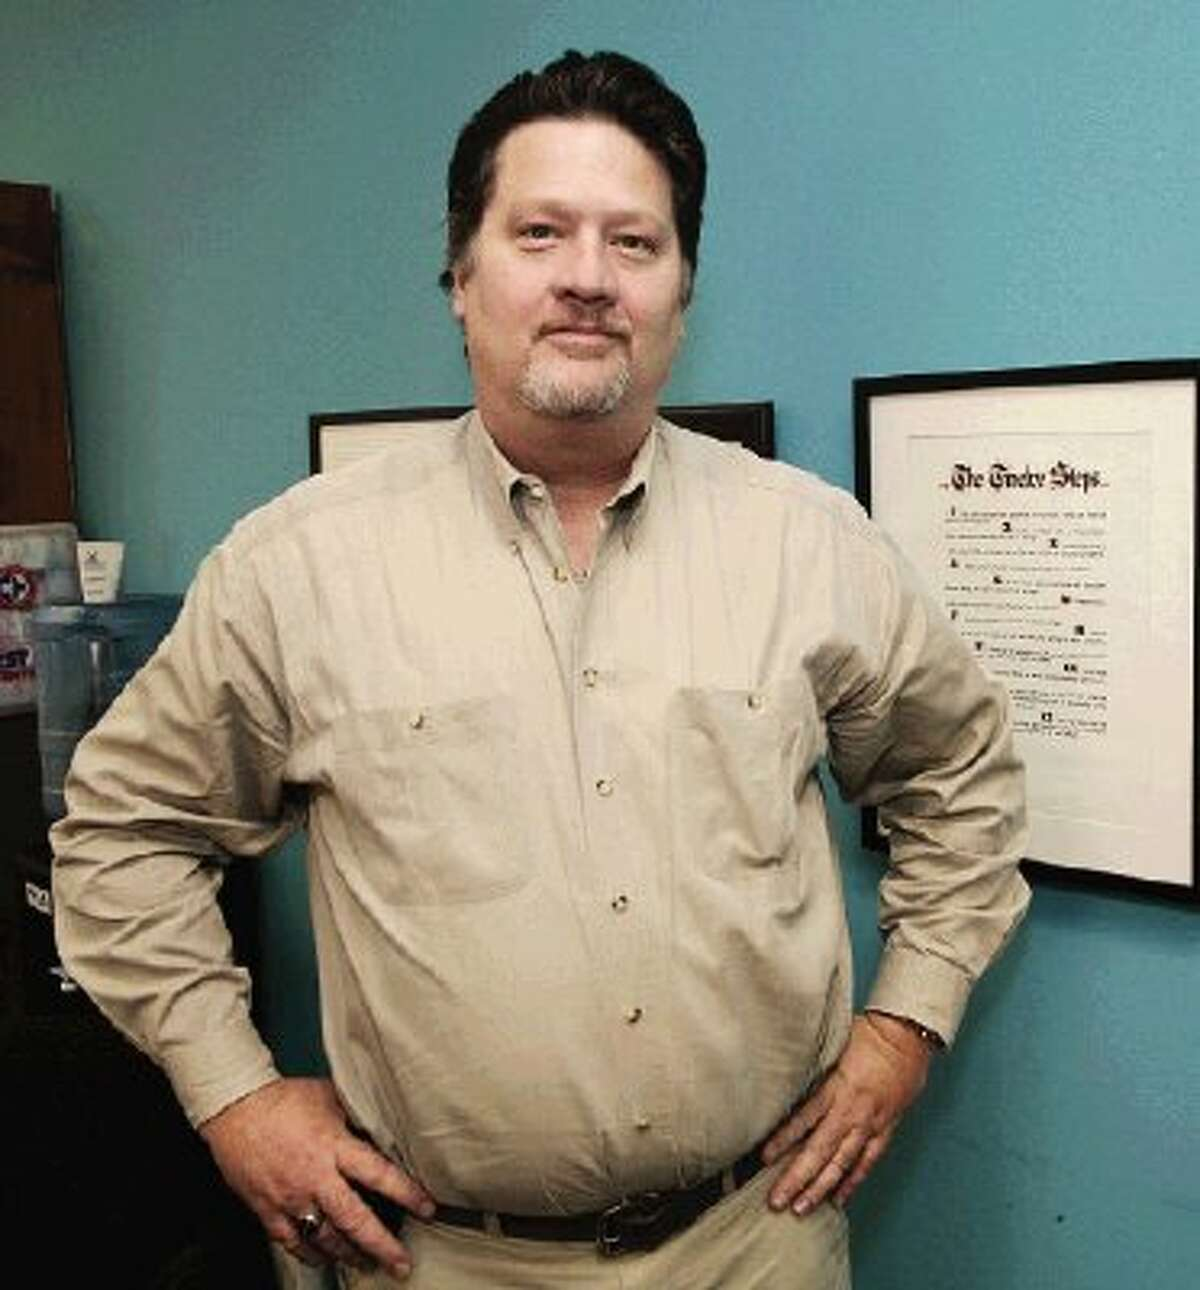 James Patterson is the founder and CEO of Allied Counseling Associates of Conroe, an addiction treatment and referral company that treats those who are drug and alcohol dependent.